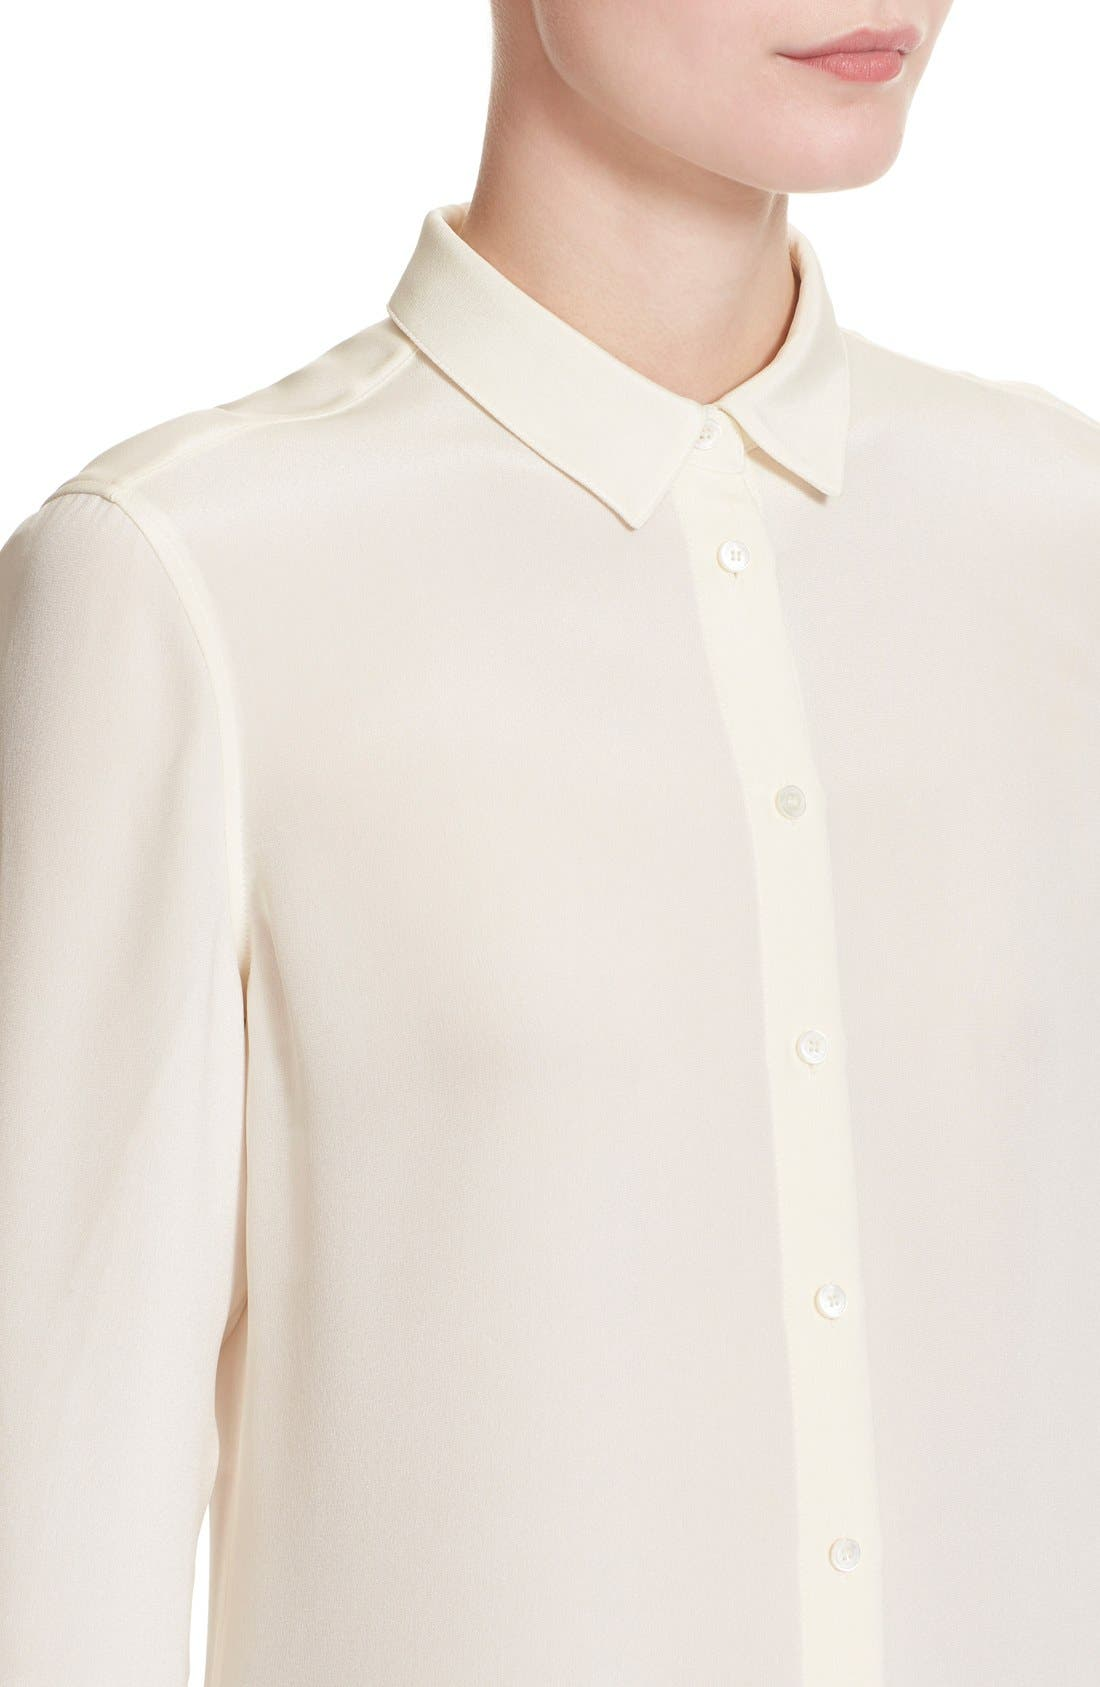 'Aster' Mulberry Silk Blouse,                             Alternate thumbnail 3, color,                             103